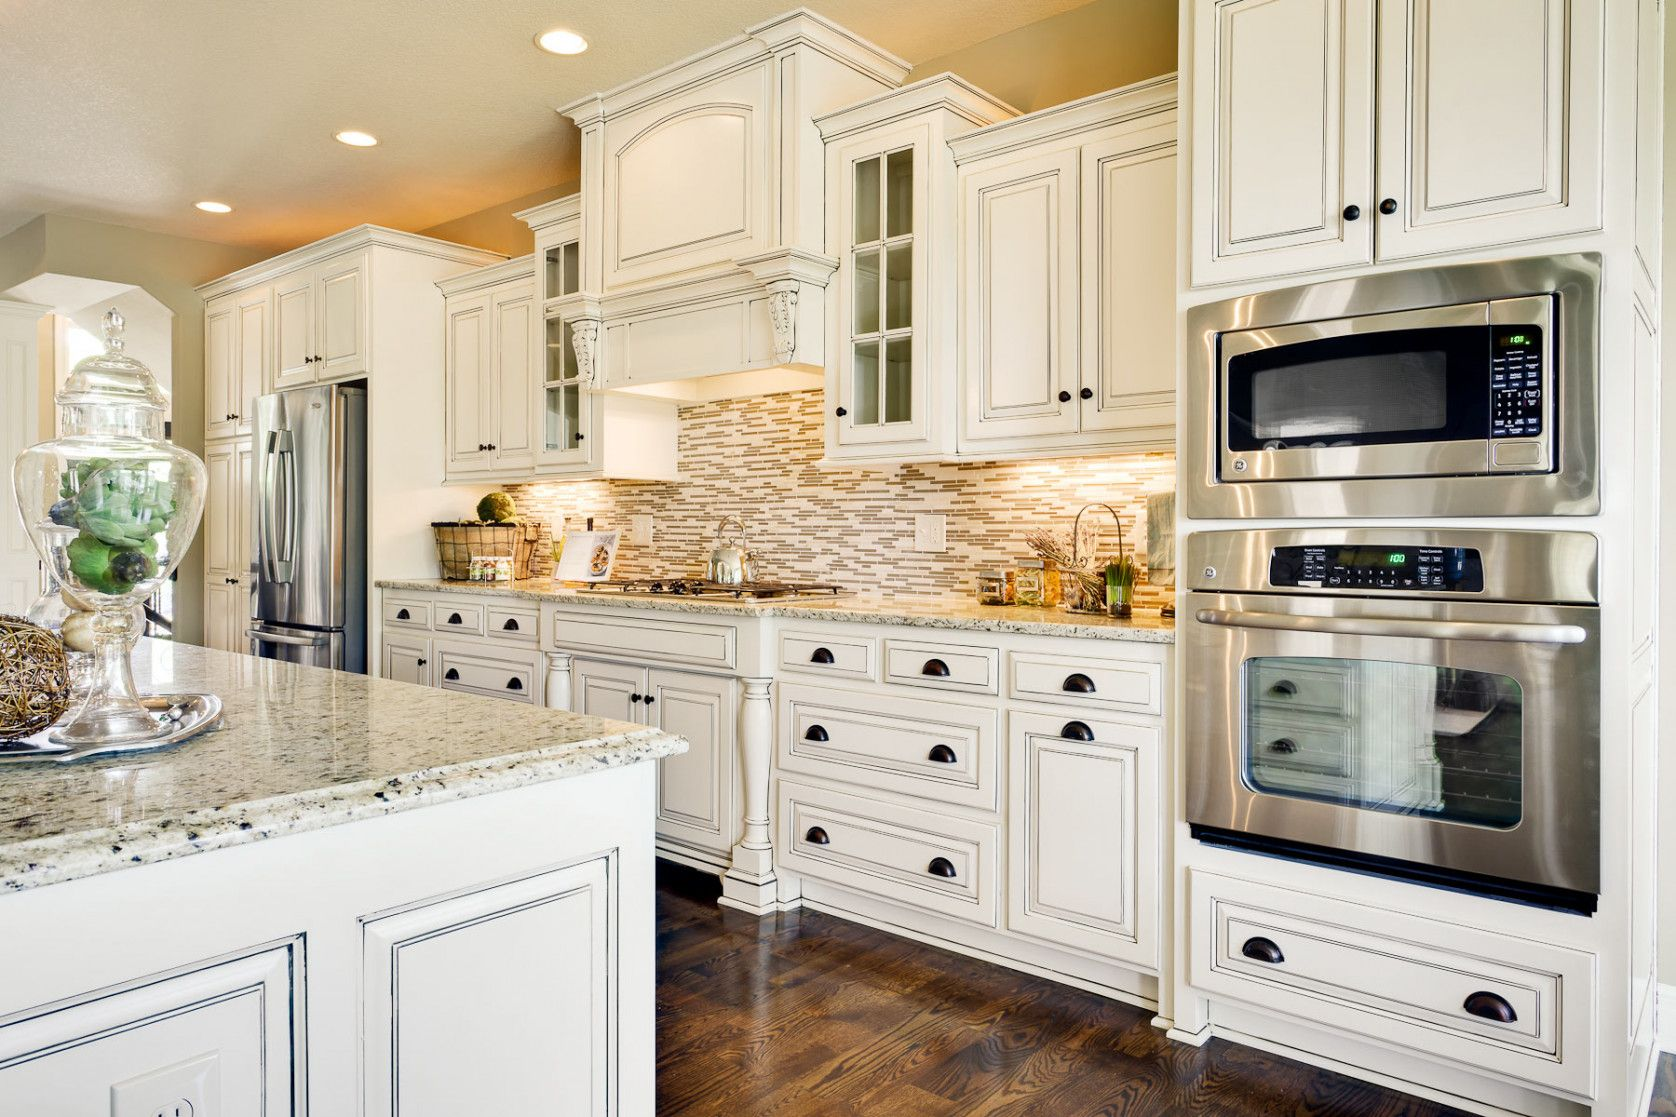 20+ How Much Do Kitchen Cabinets Cost - Chalkboard Ideas ...